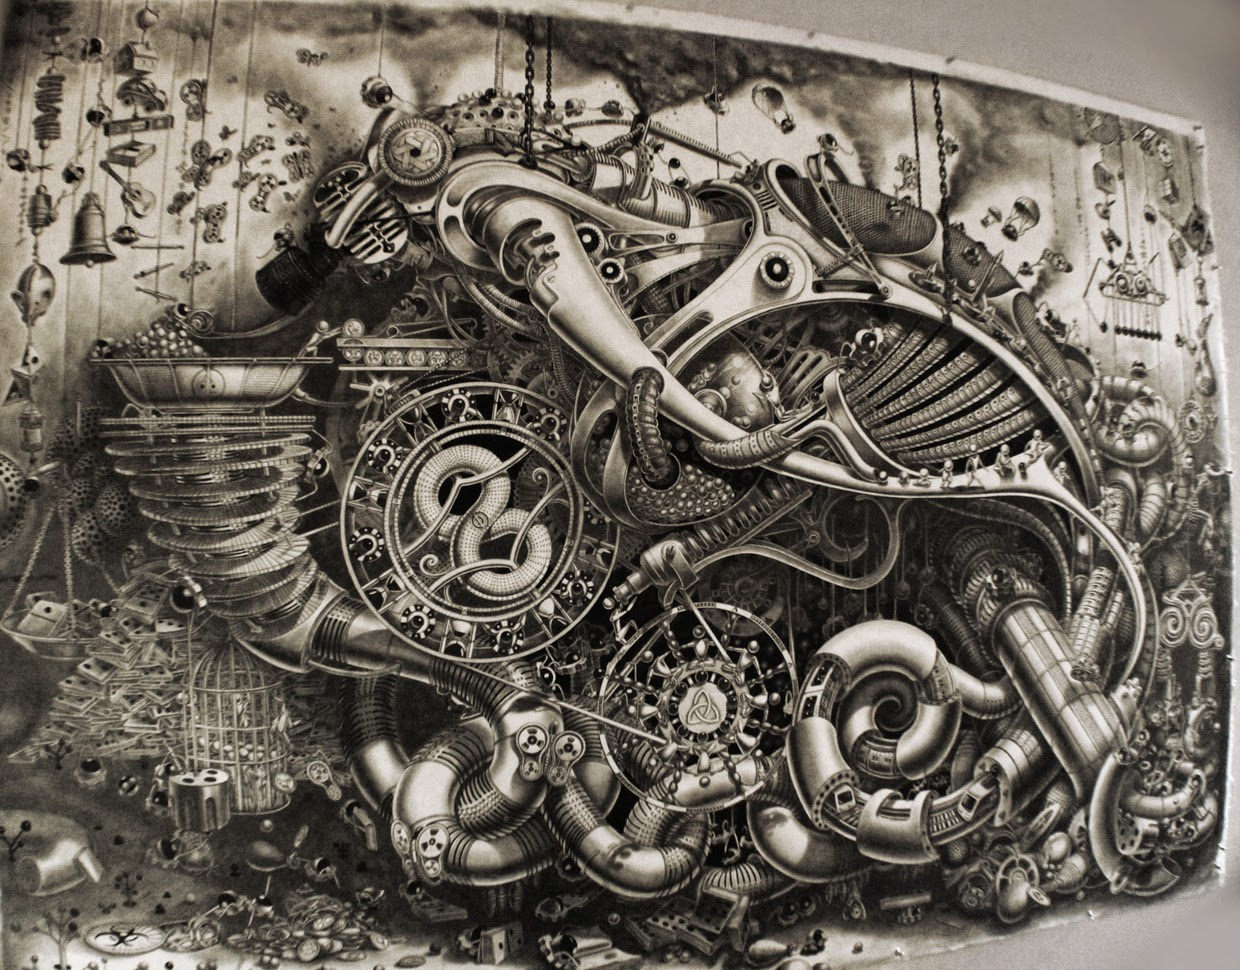 11-Deadpan-Comedy-Tryptic-Samuel-Gomez-Massive-Detailed-Drawings-and-a-Guitar-www-designstack-co